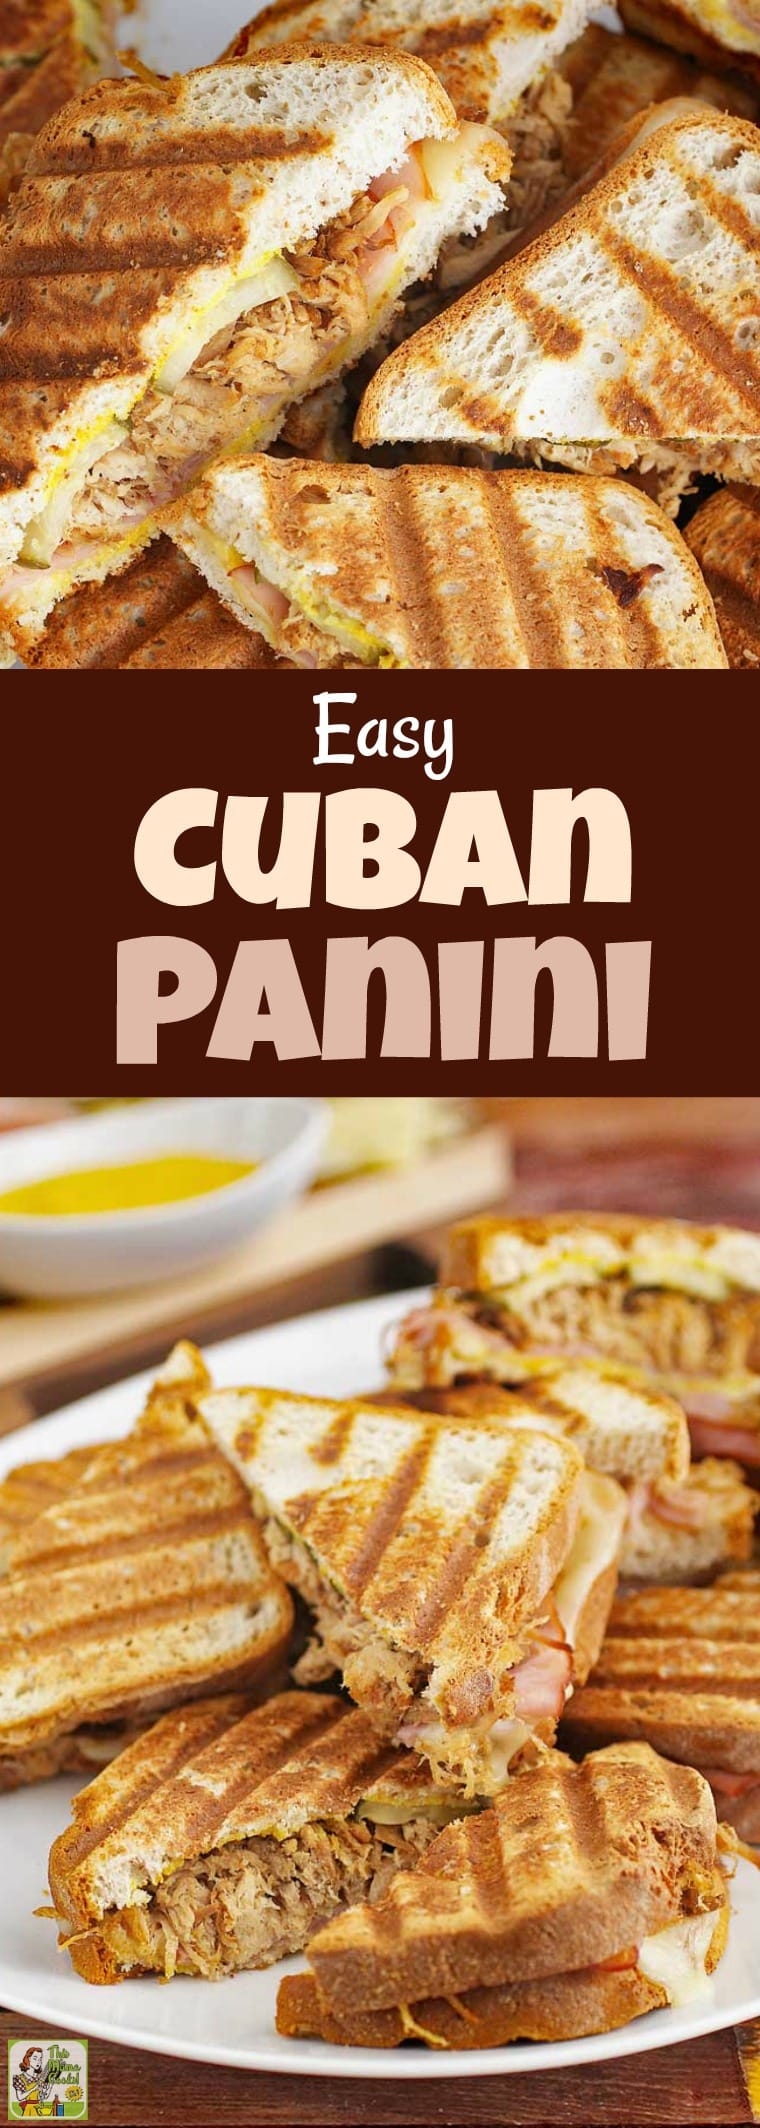 Looking for an authentic Cuban sandwich recipe that's gluten free? Try making this Easy Cuban Panini! This Cuban pulled pork sandwich recipe uses slow cooker pork on gluten free bread grilled panini sandwich style. #recipe #easy #recipeoftheday #healthyrecipes #glutenfree #easyrecipes #snack #snacks #dinner #easydinner #panini #grilledcheese #sandwiches #slowcooker #crockpot #pork #cuban